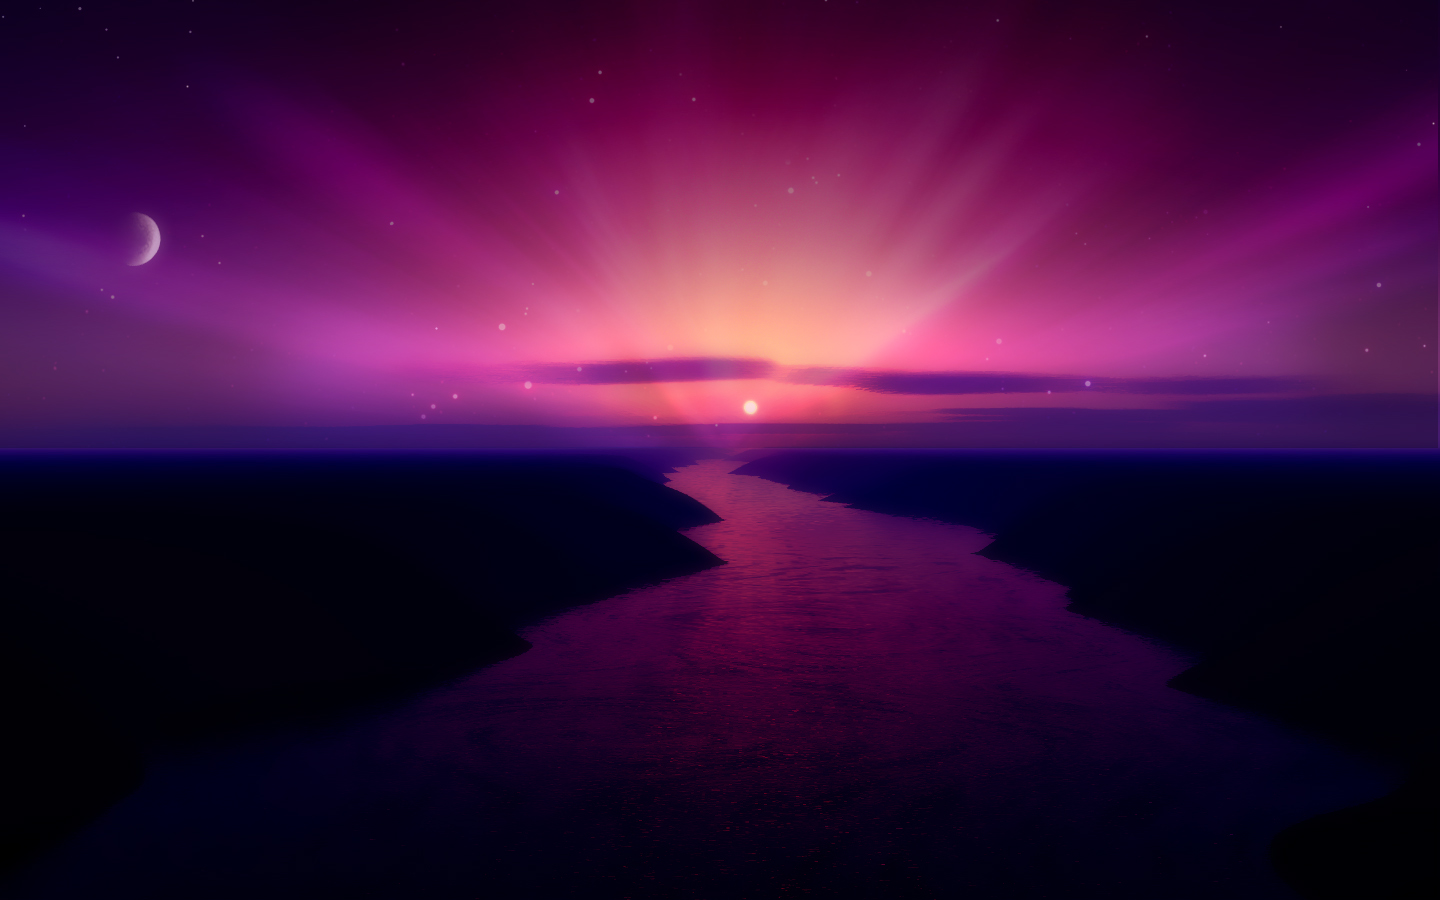 purple aurora borealis wallpapers x - photo #11